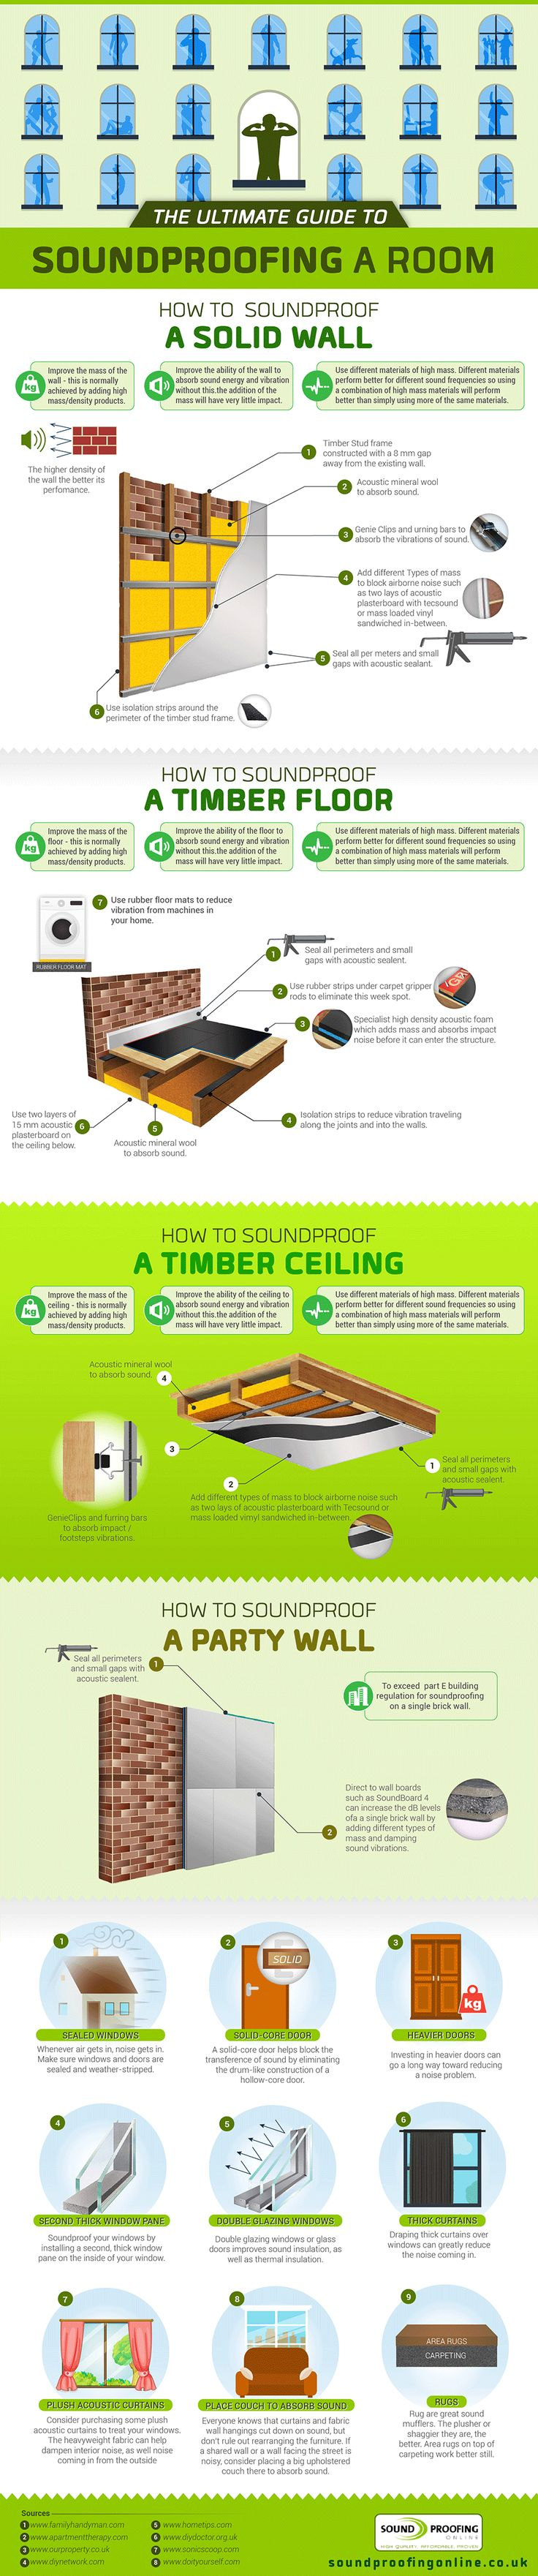 The Ultimate Guide to Soundproofing a Room #infographic #Soundproofing #HomeImprovement